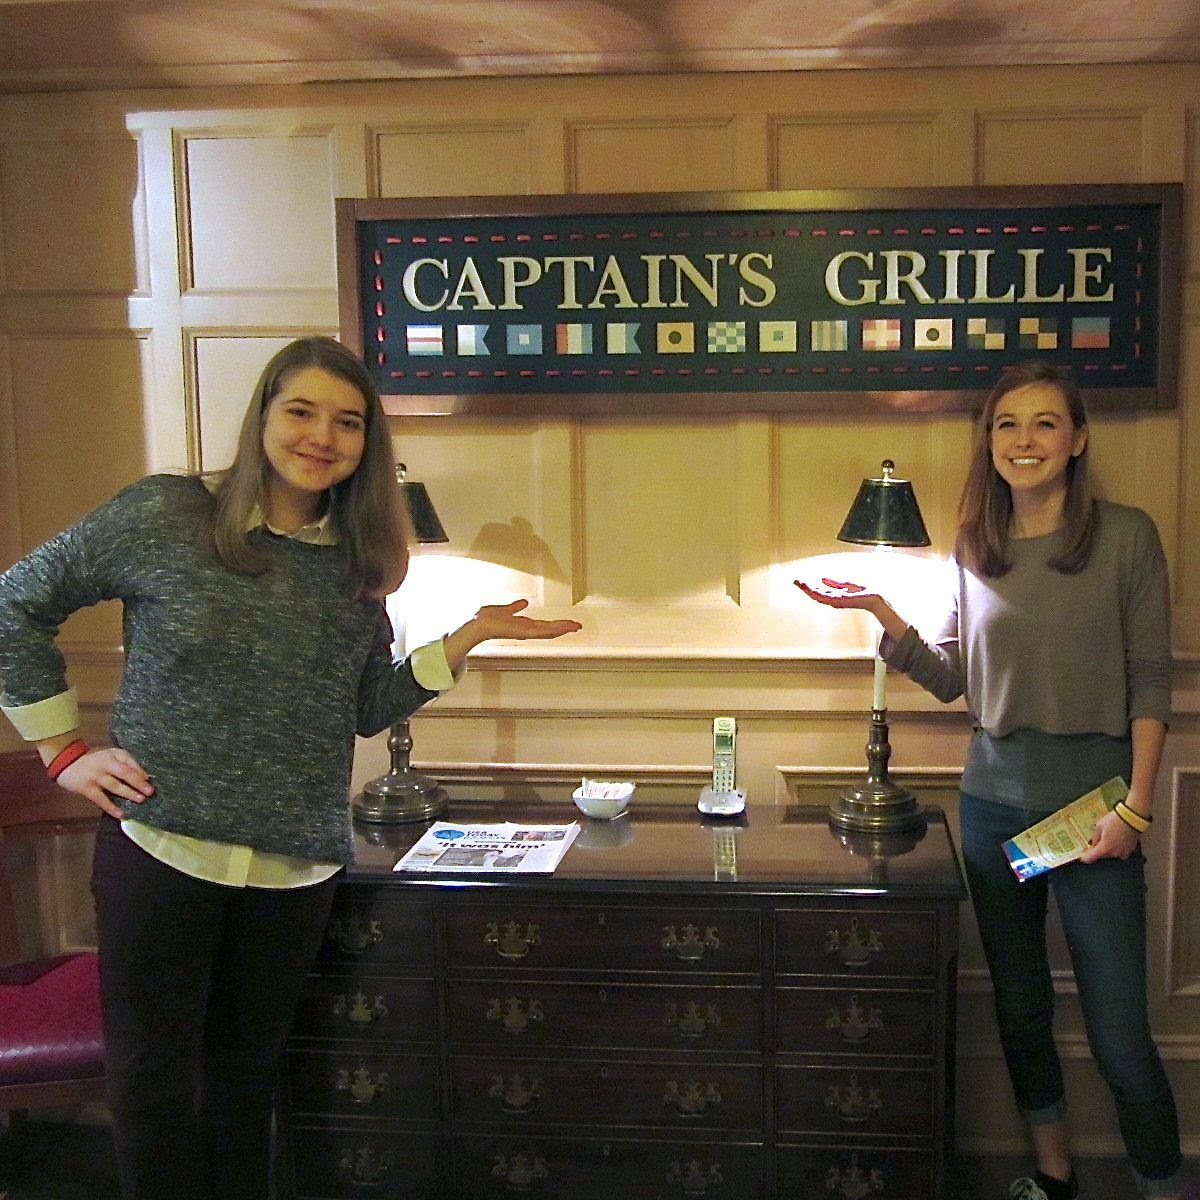 Captain's Grille Yacht Club Disney World